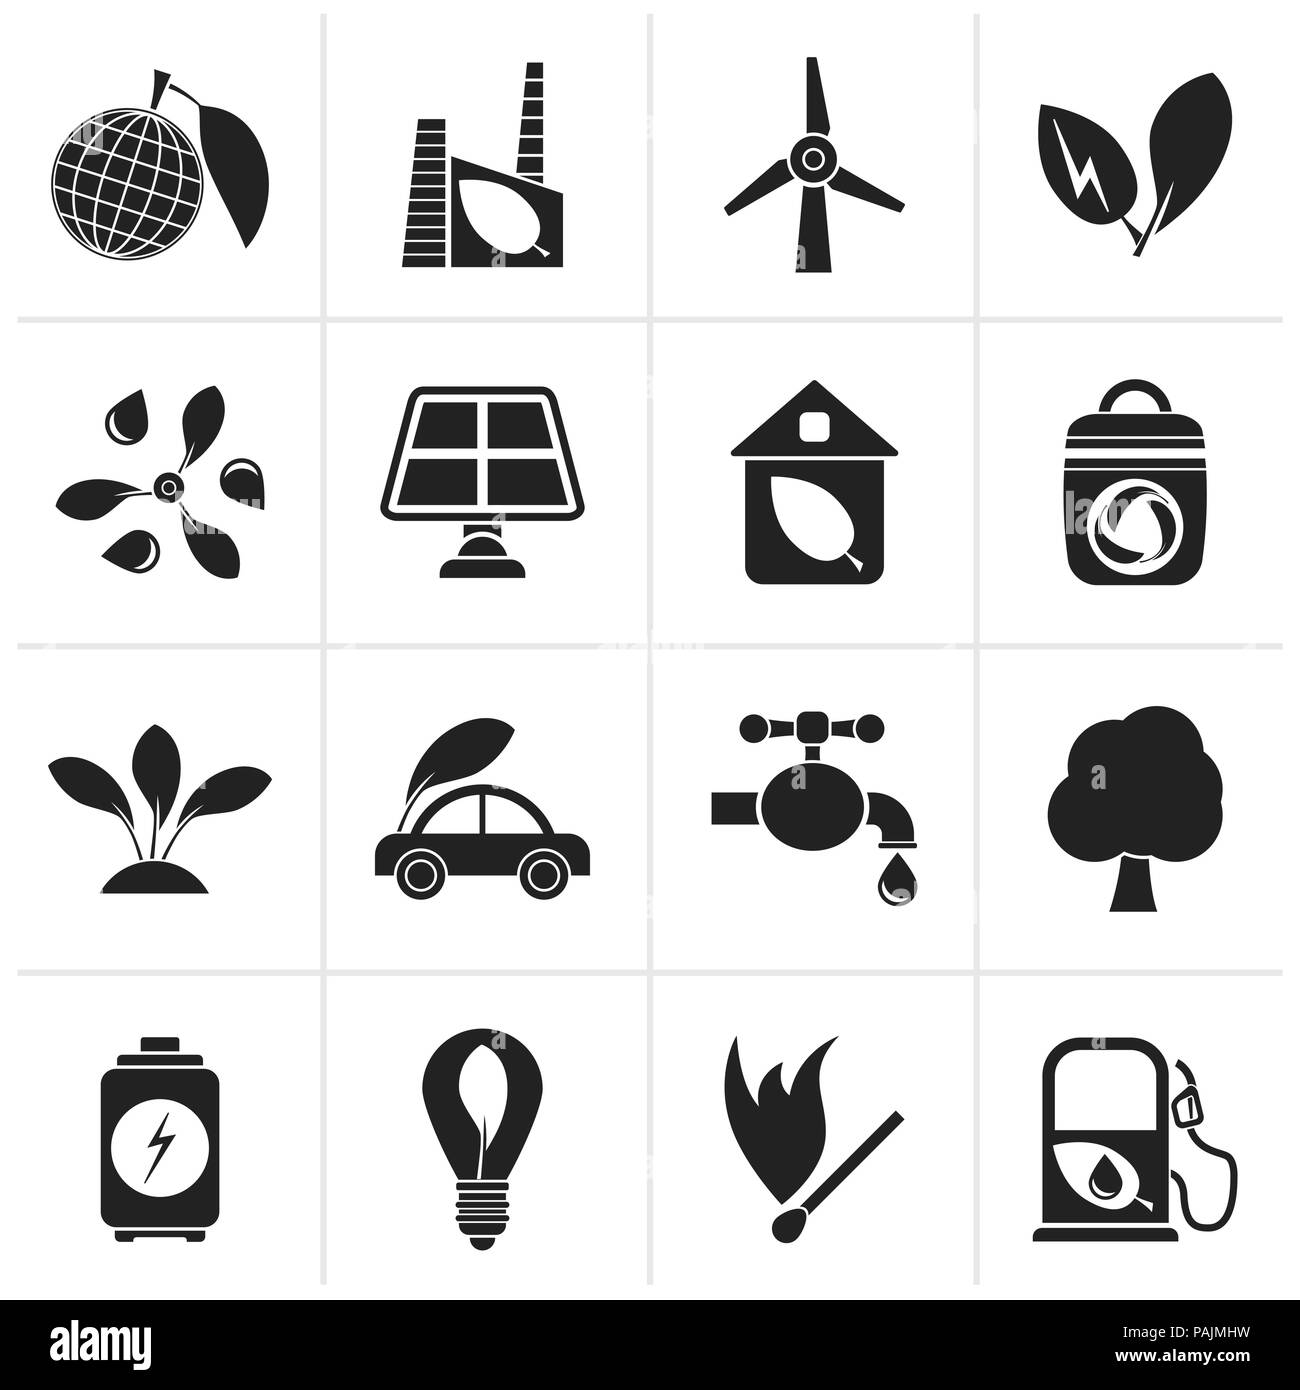 Black Green, Environment and ecology Icons - vector icon set - Stock Image